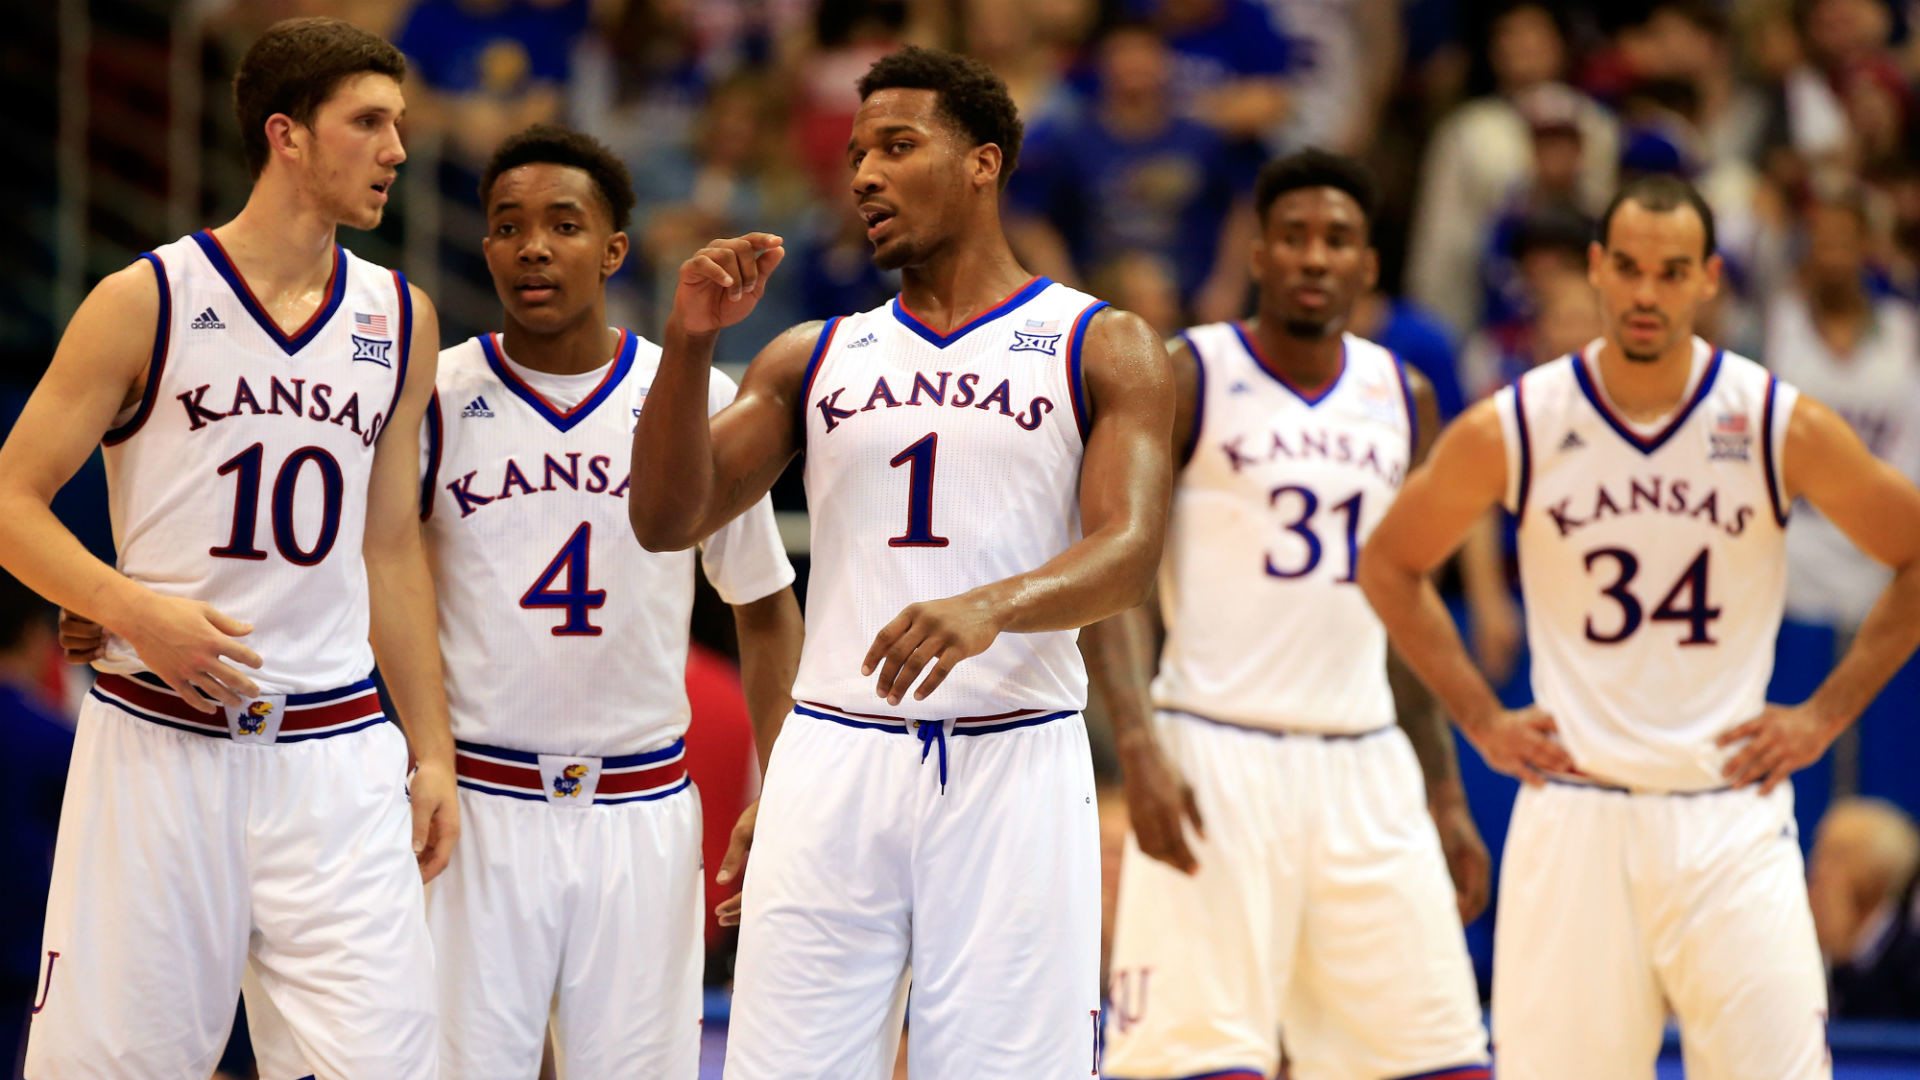 1920x1080 Kansas secures share of 12th consecutive Big 12 title | NCAA Basketball |  Sporting News